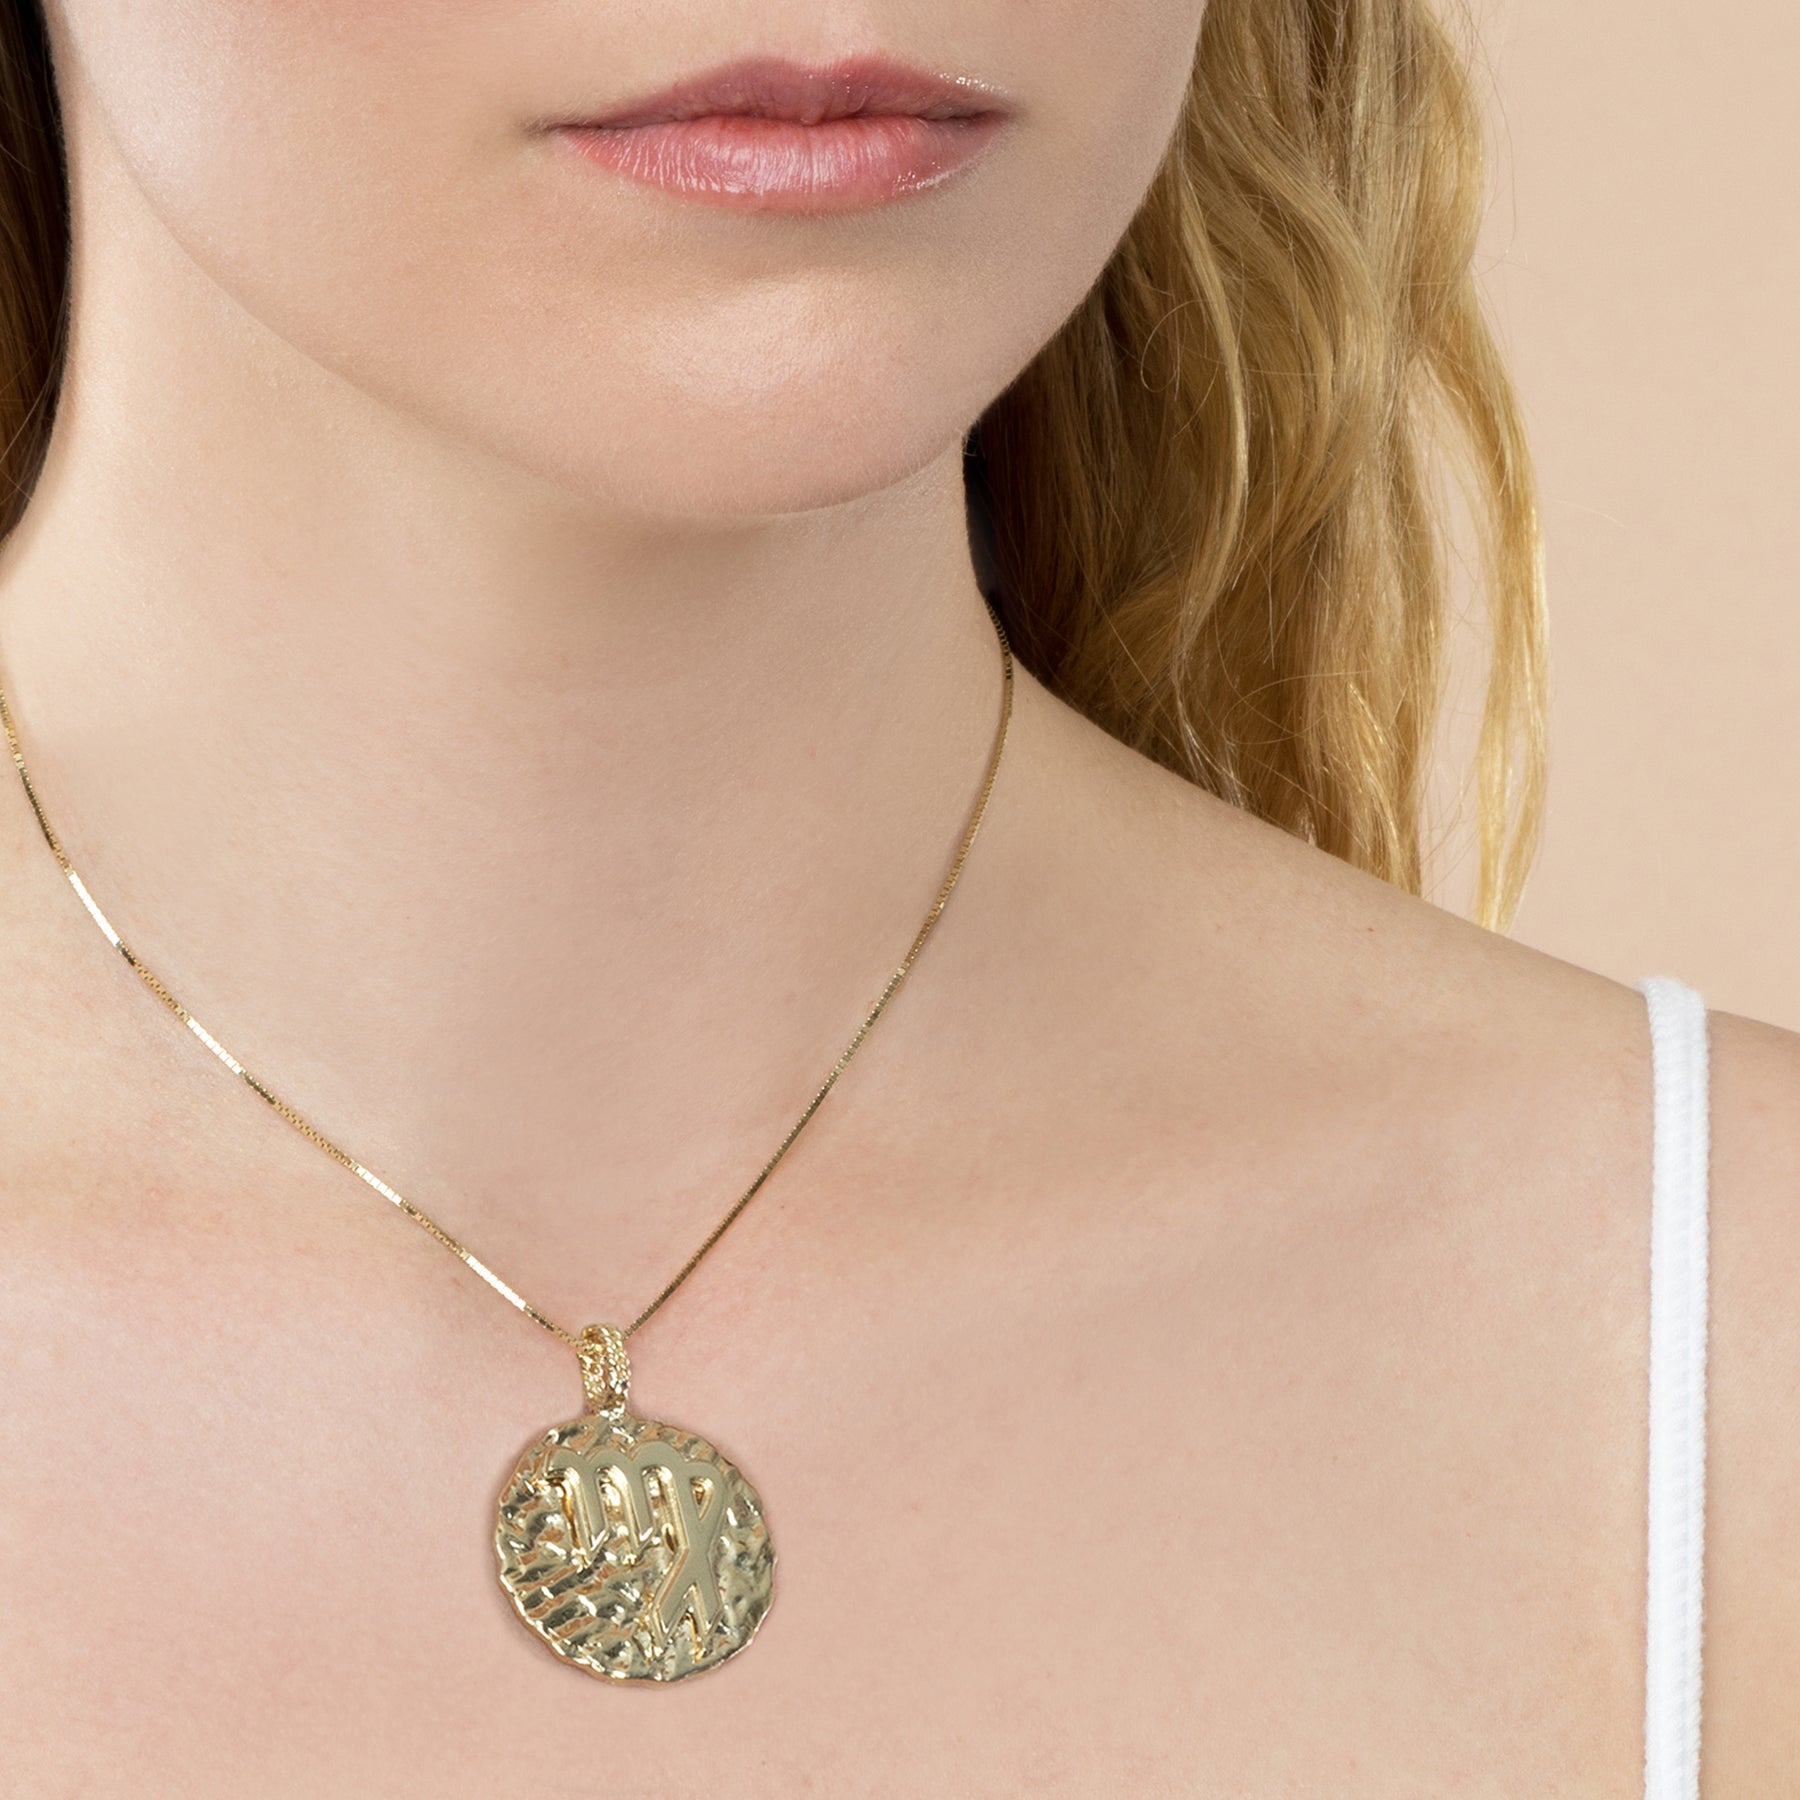 GOLD LARGE ZODIAC COIN PENDANT